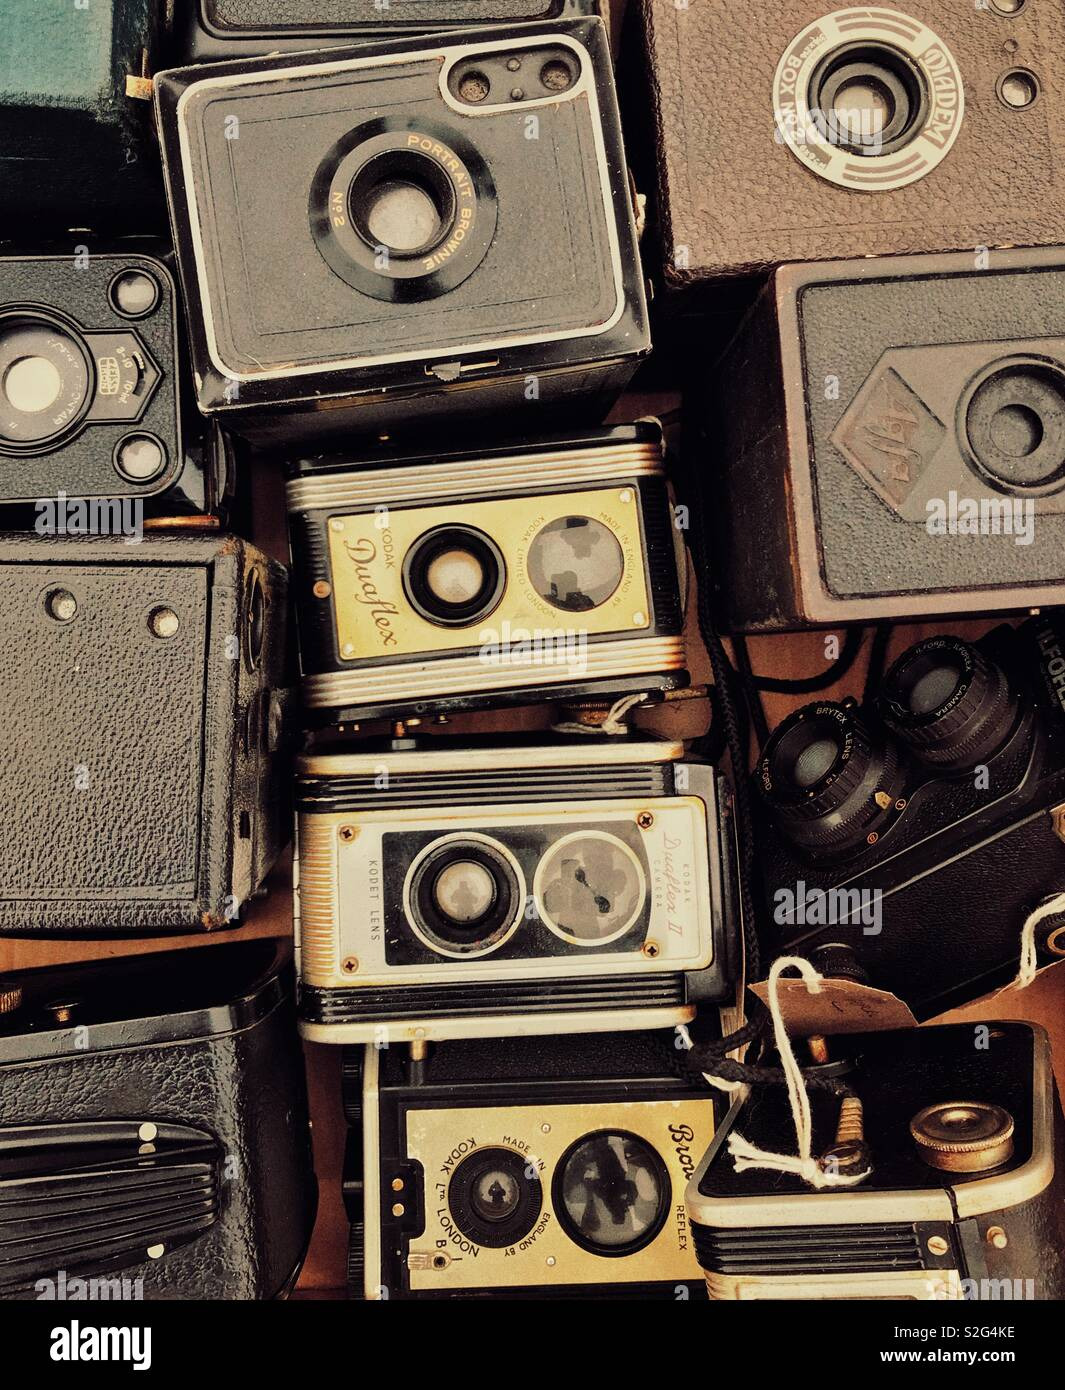 A collection of old film cameras - Stock Image